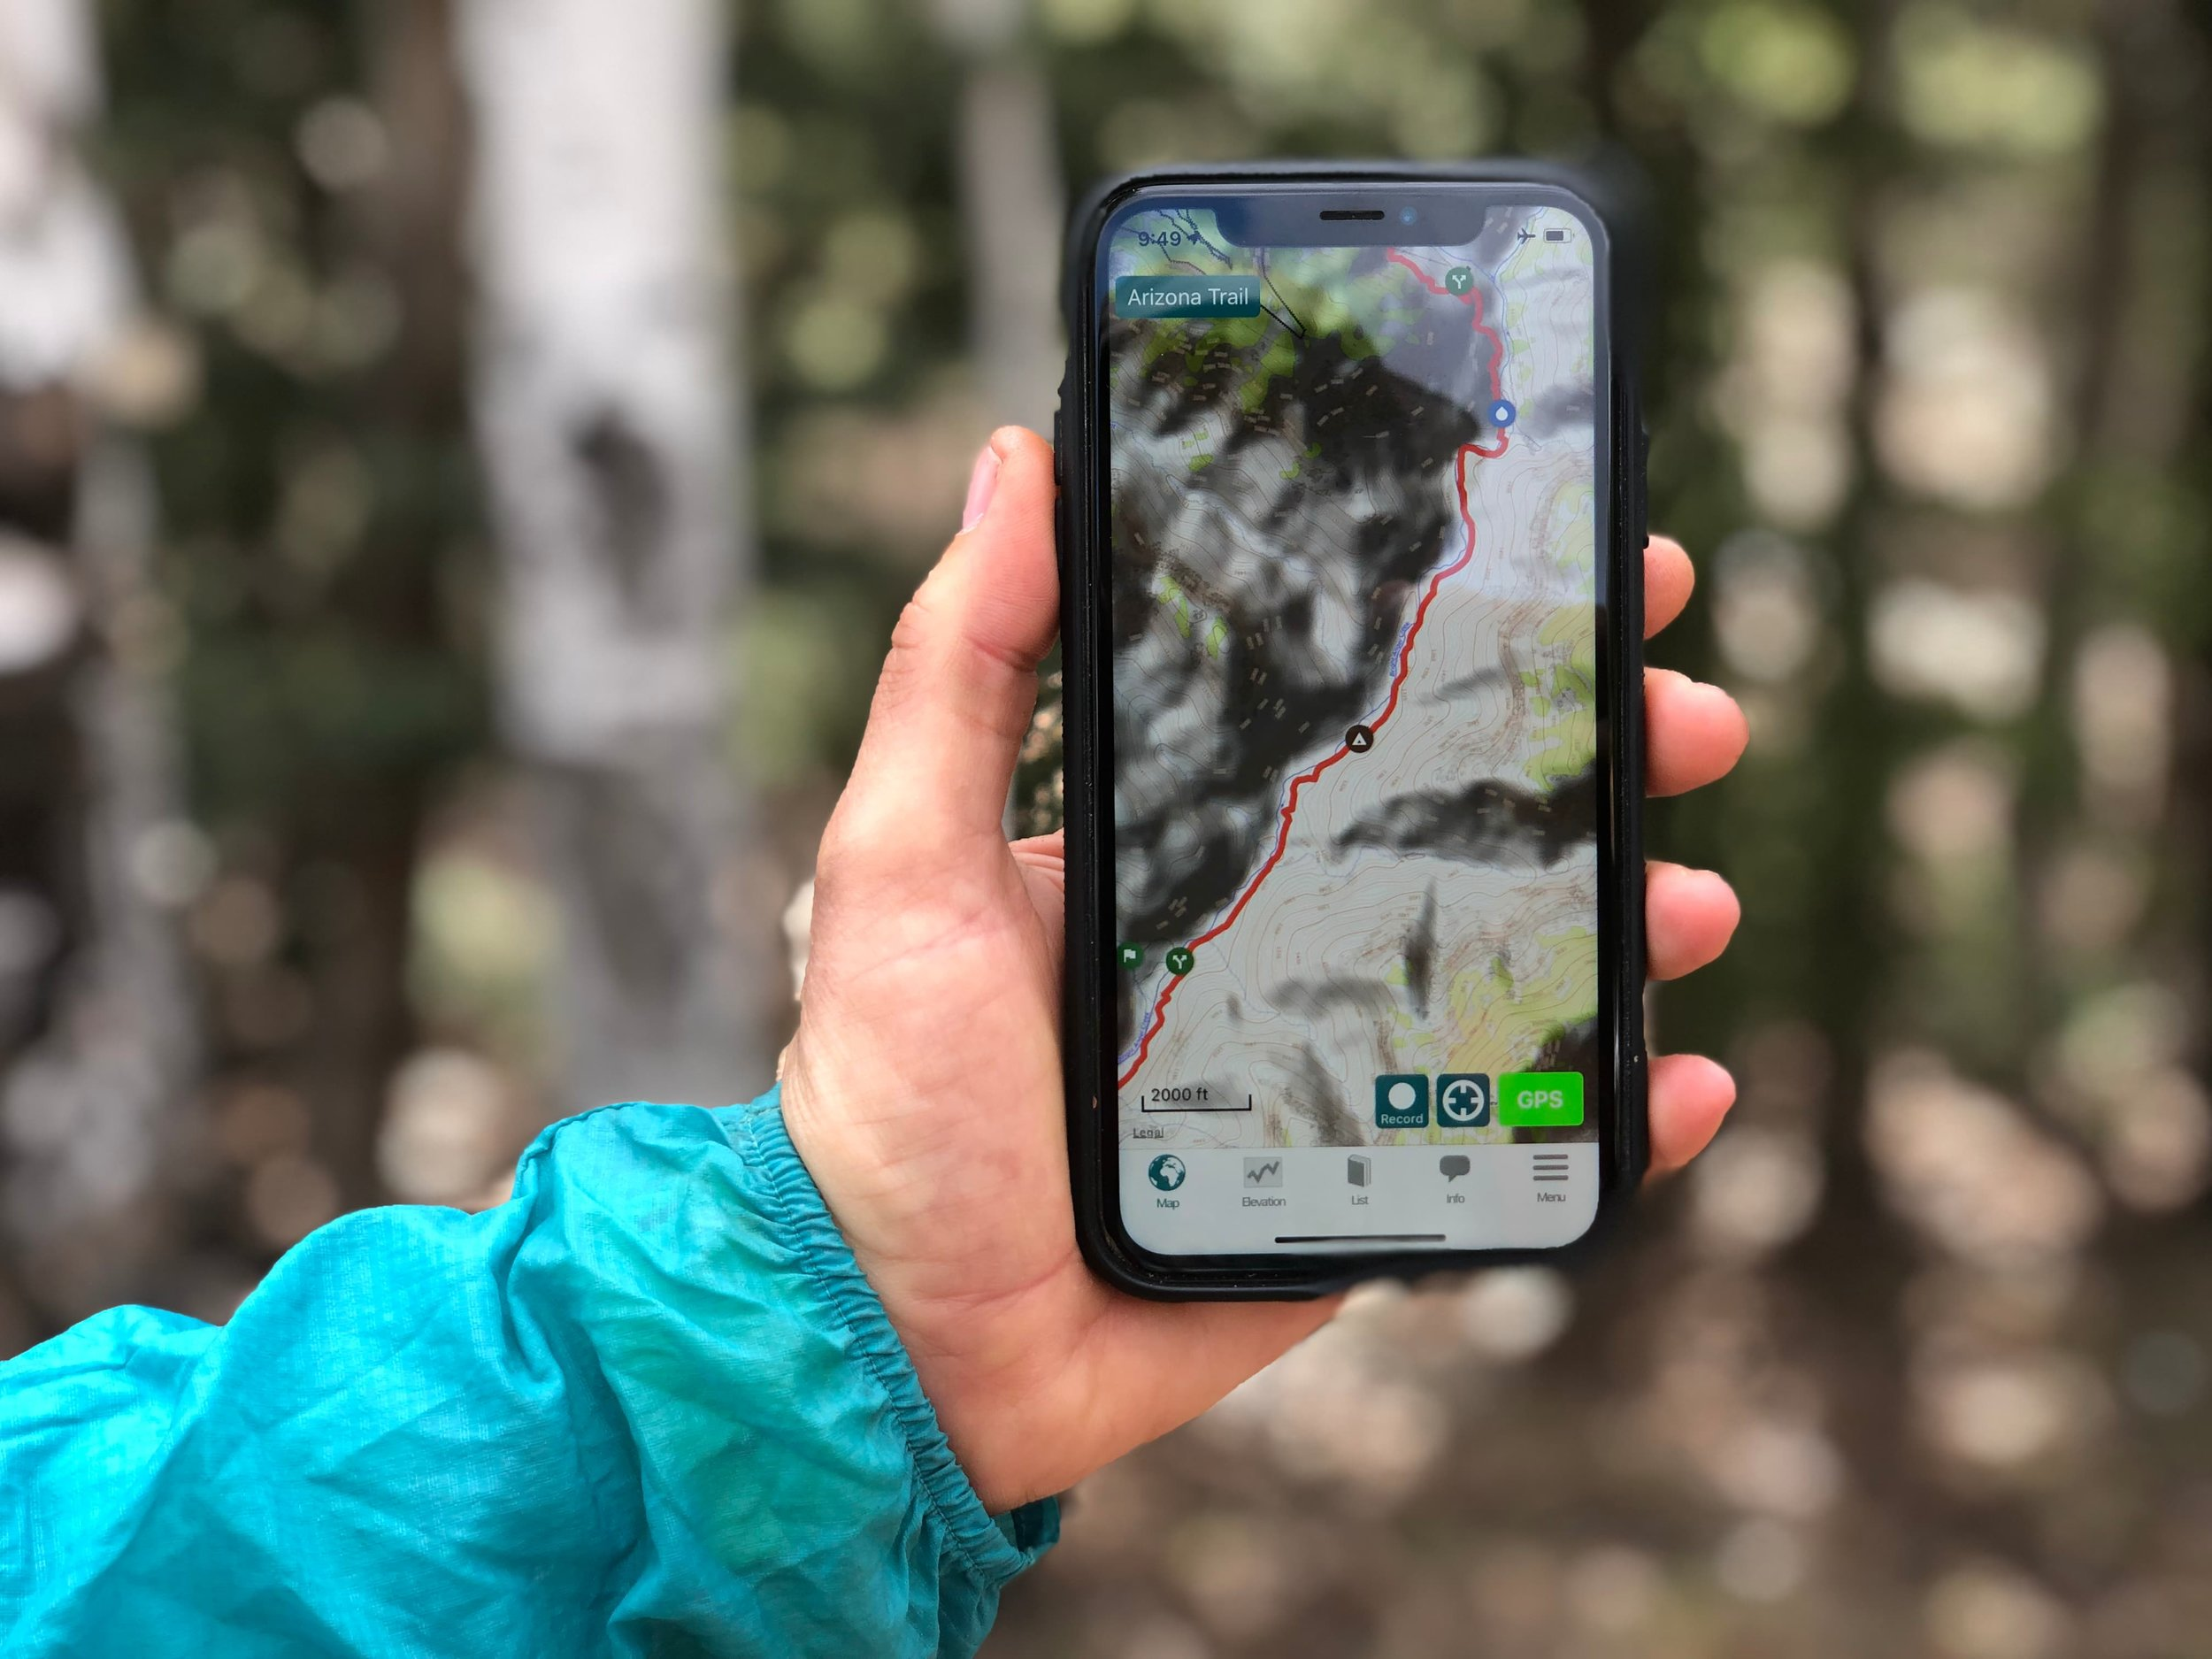 The iPhone has quickly become a useful gear item that most long distance hikers bring for taking photos, journaling, entertainment, and navigating on their adventures. Here it is shown with the Guthook AZT app. Photo courtesy Naomi Hudetz